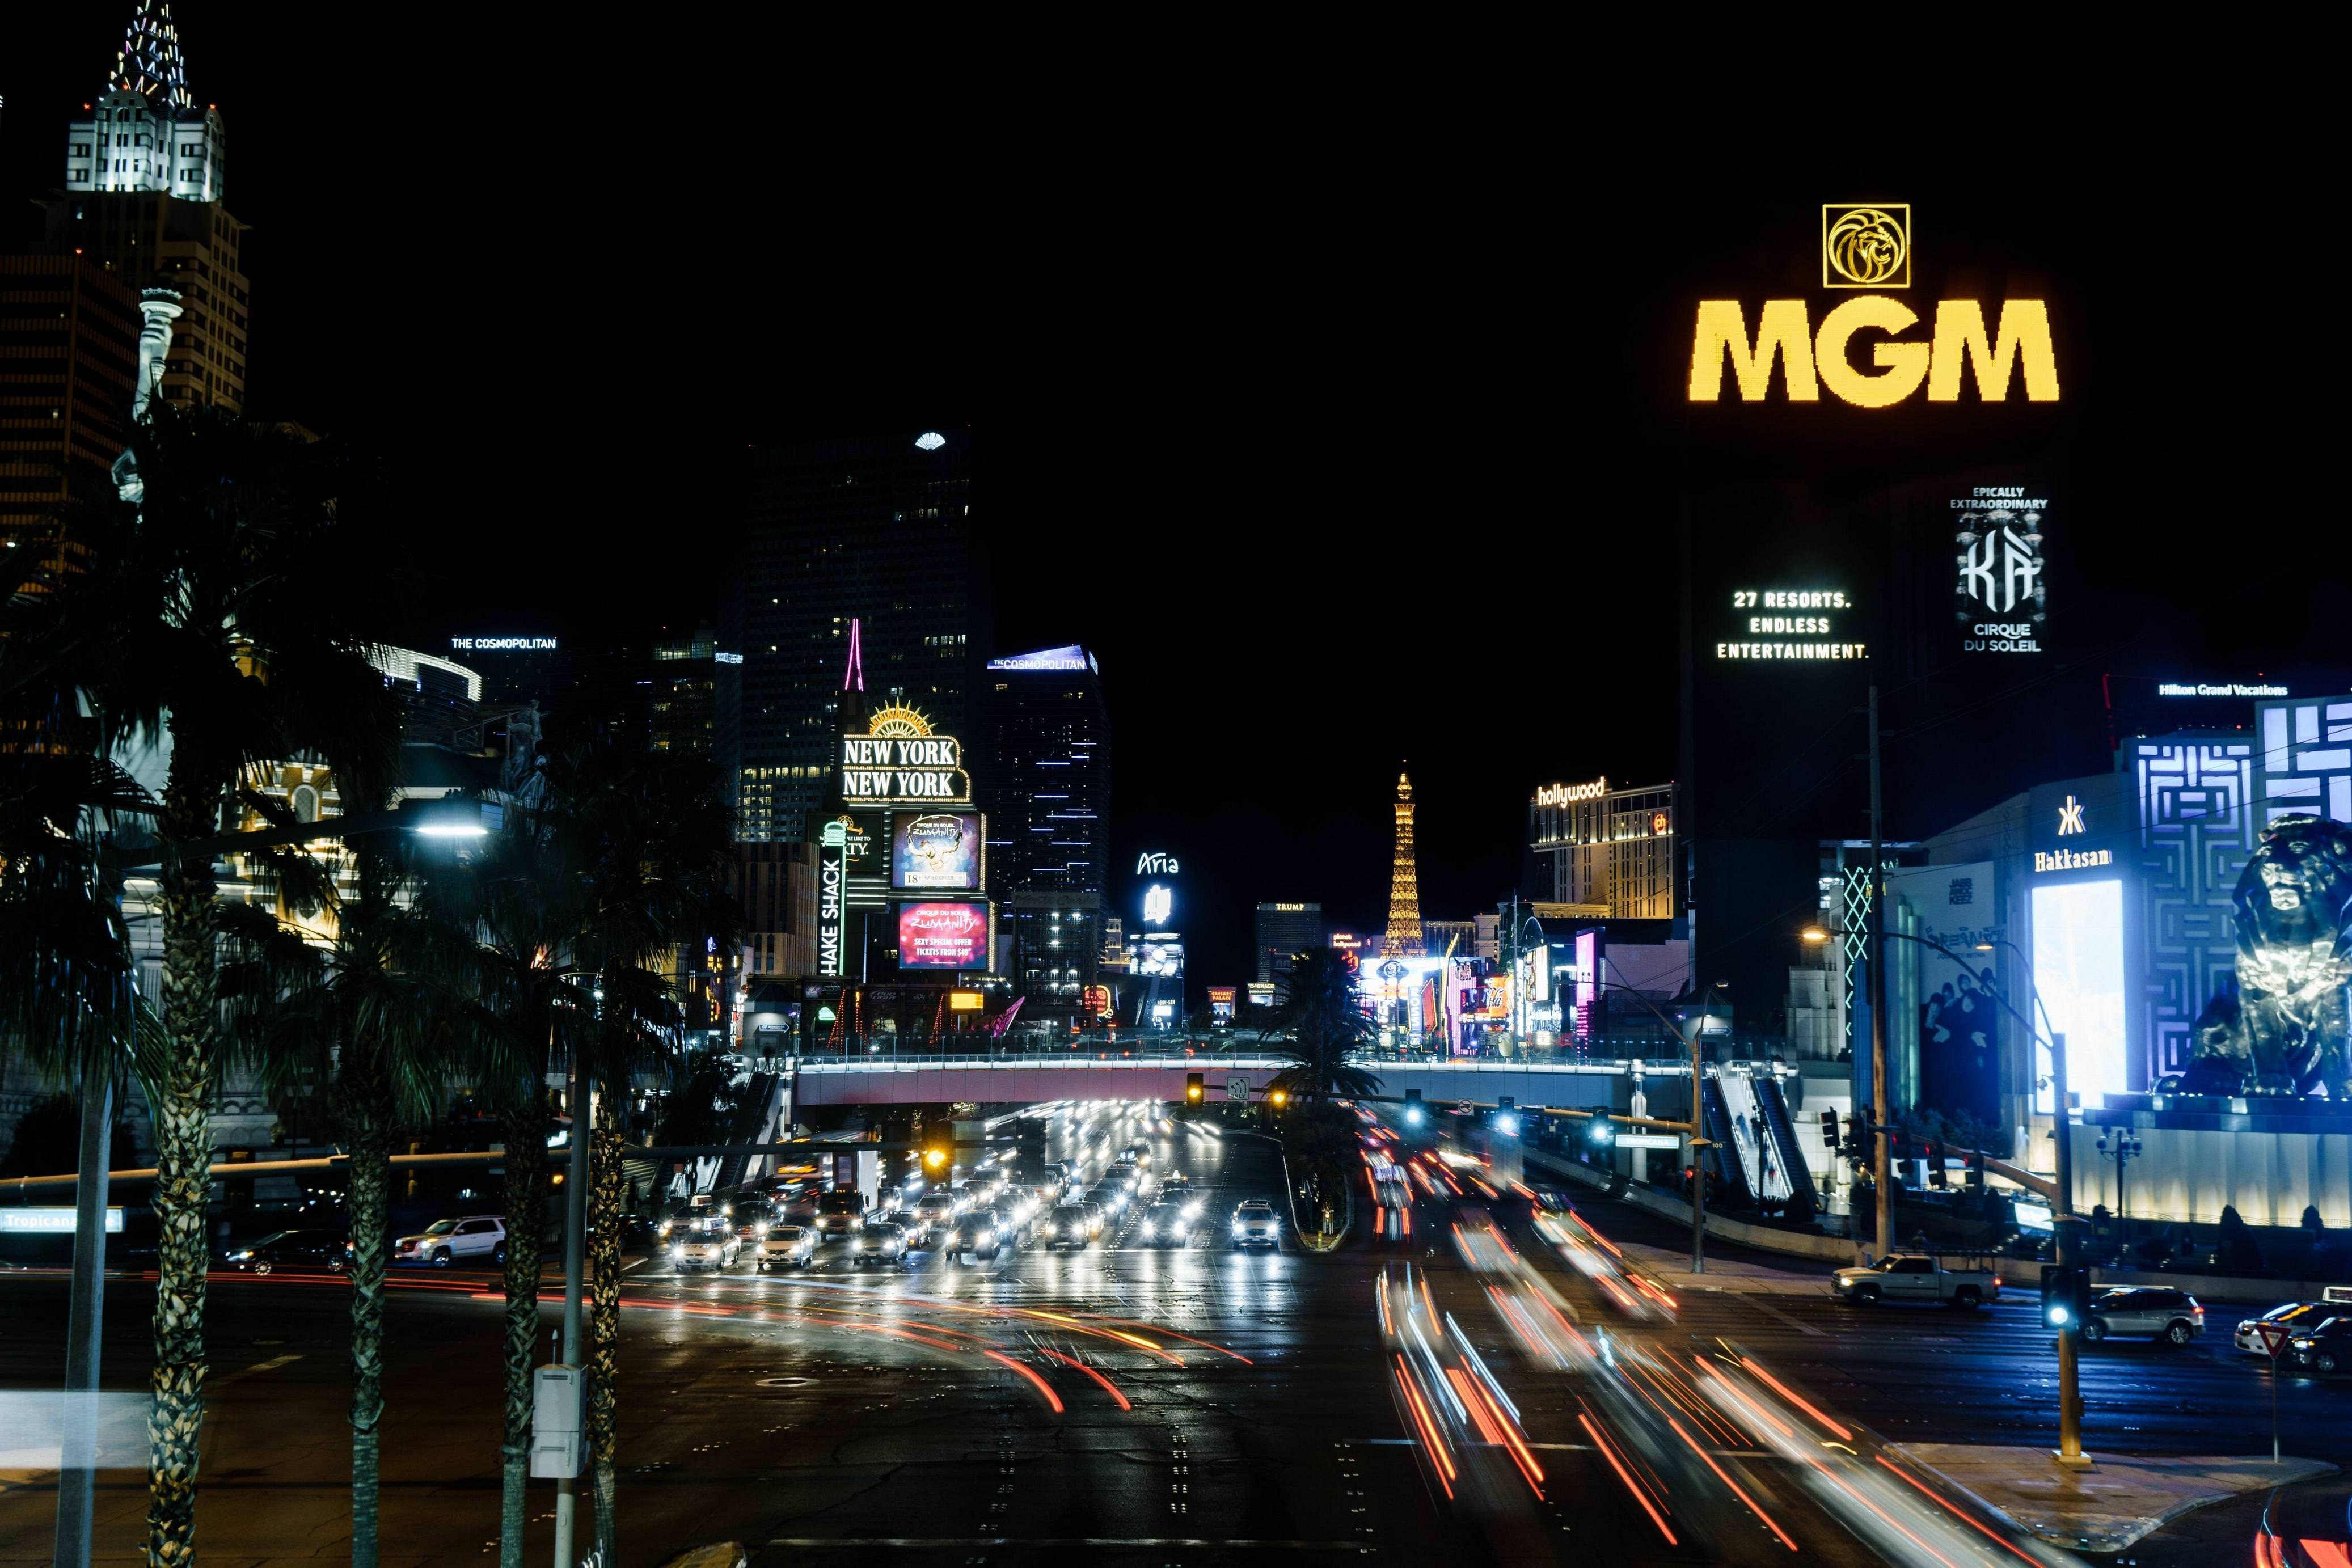 Vegas 4k Wallpapers For Your Desktop Or Mobile Screen Free And Easy To Download